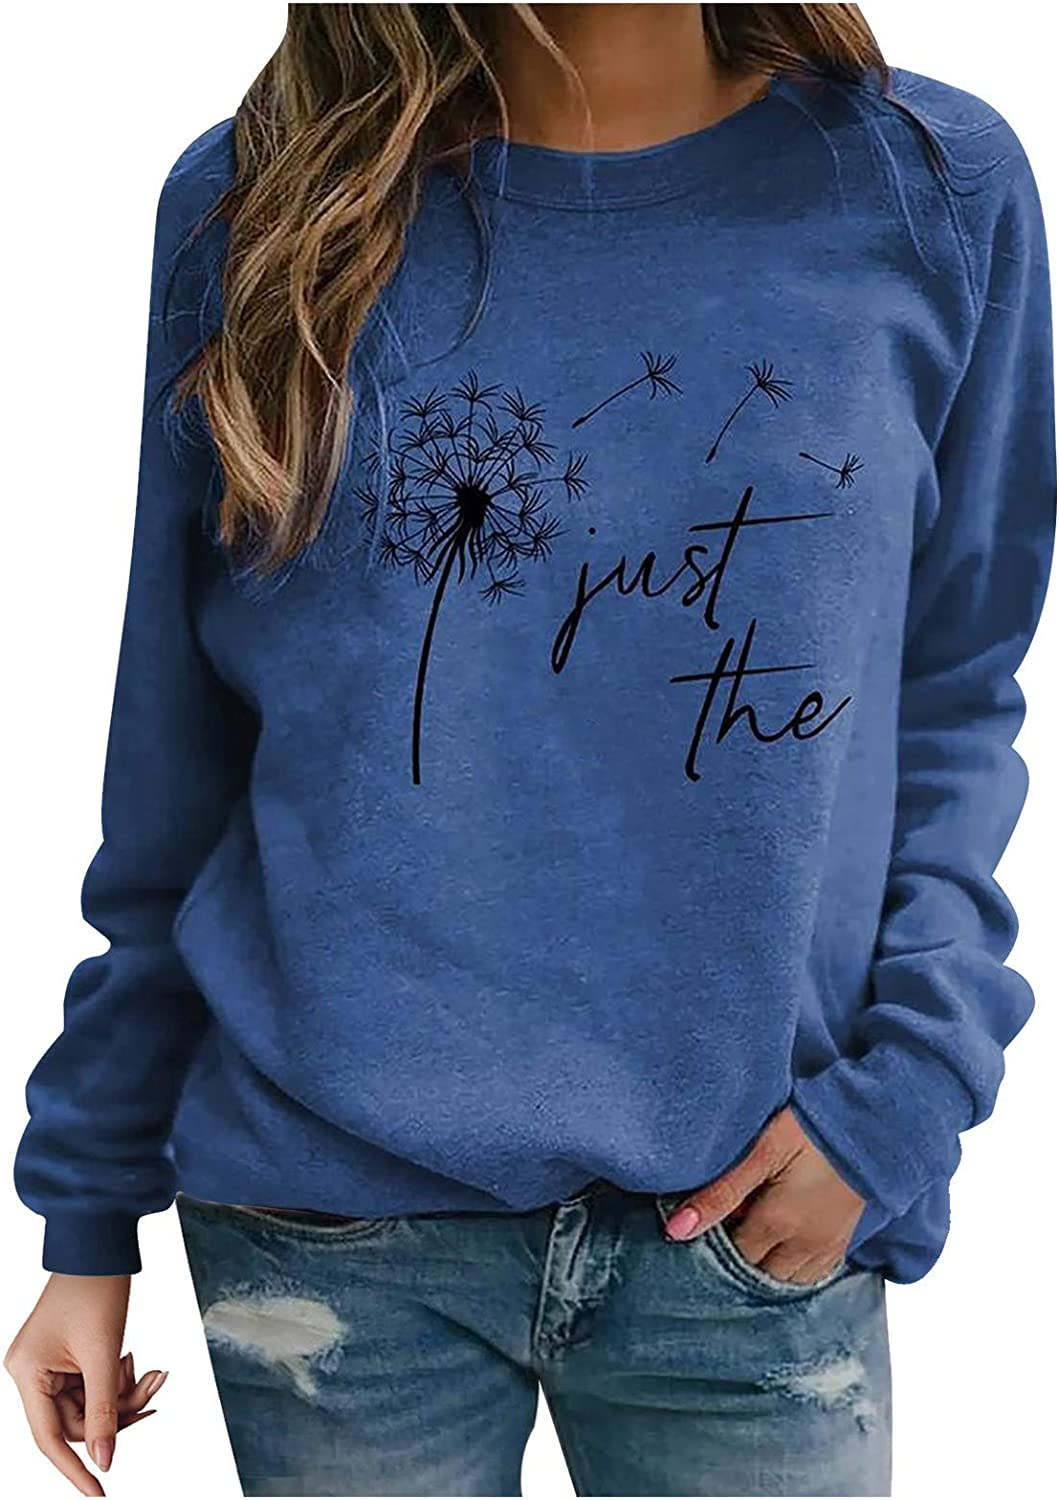 Crewneck Sweatshirts for Women, Women's Casual Long Sleeve Loose Pullover Top Shirts Oversized Sweatshirts with Sayings